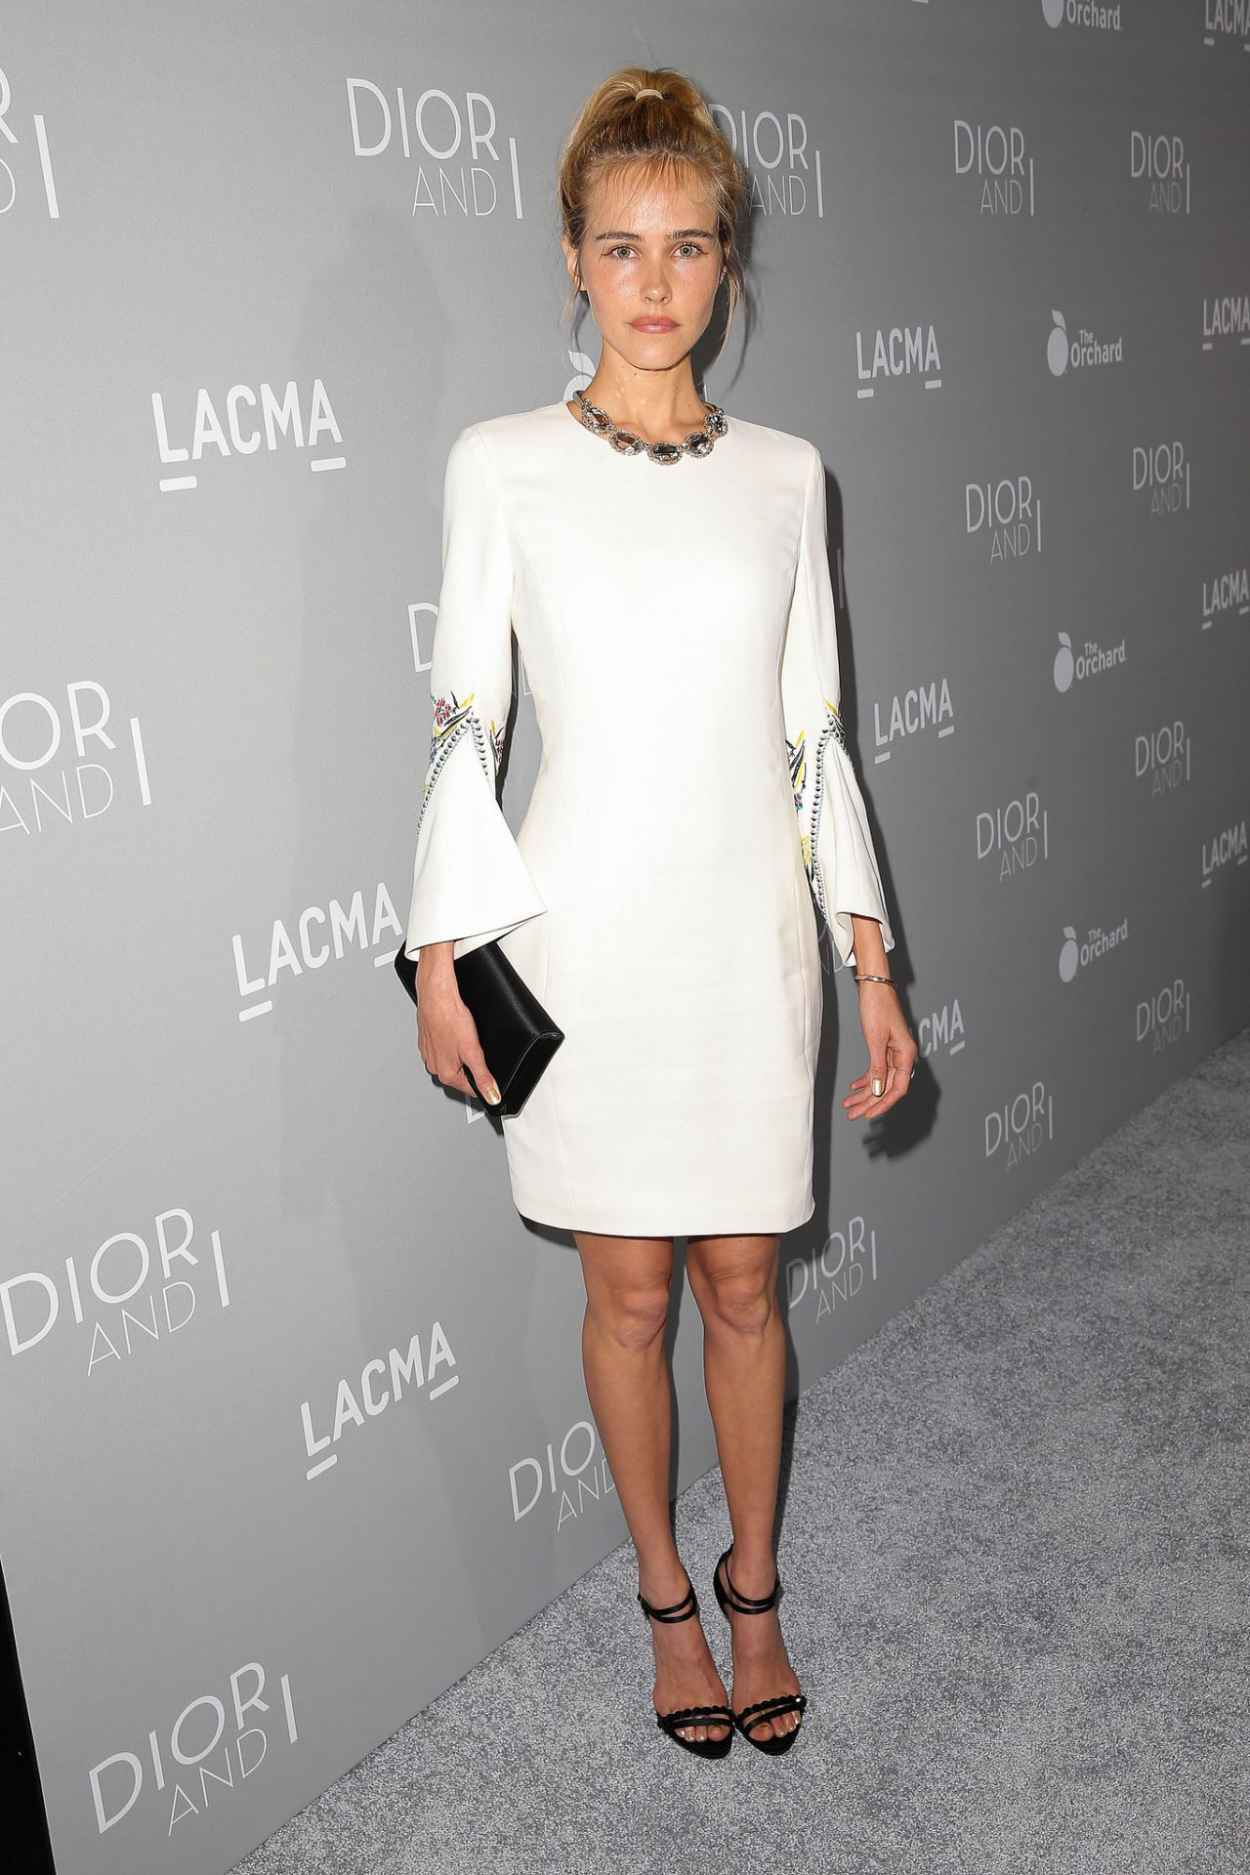 Isabel Lucas - Orchard Premiere of Dior and I in Los Angeles-4